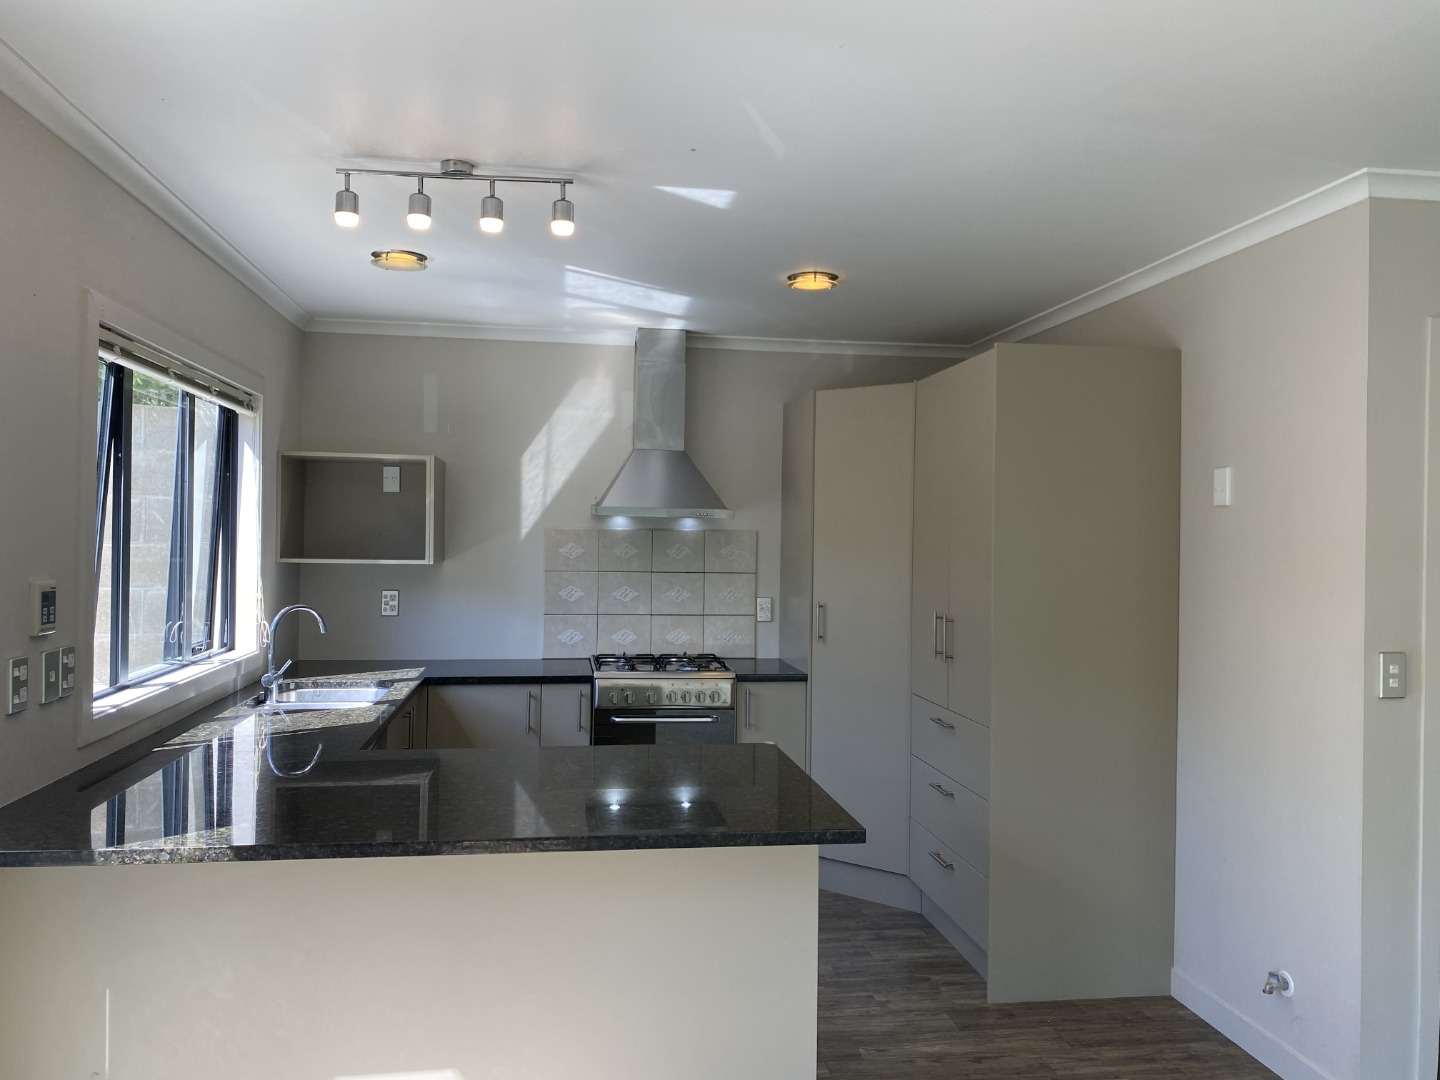 Real Estate For Rent Houses & Apartments : 3 plus bedroom townhouse in Johnsonville, Wellington